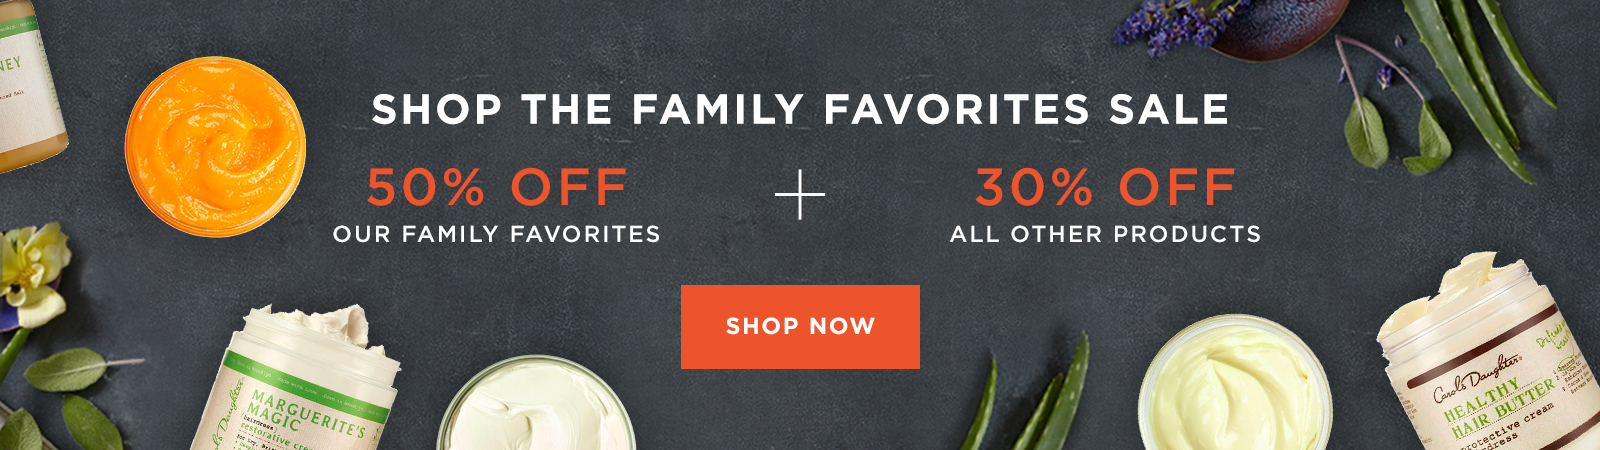 30% Off Sitewide. 50% Off Family Favorites. Shop Now.